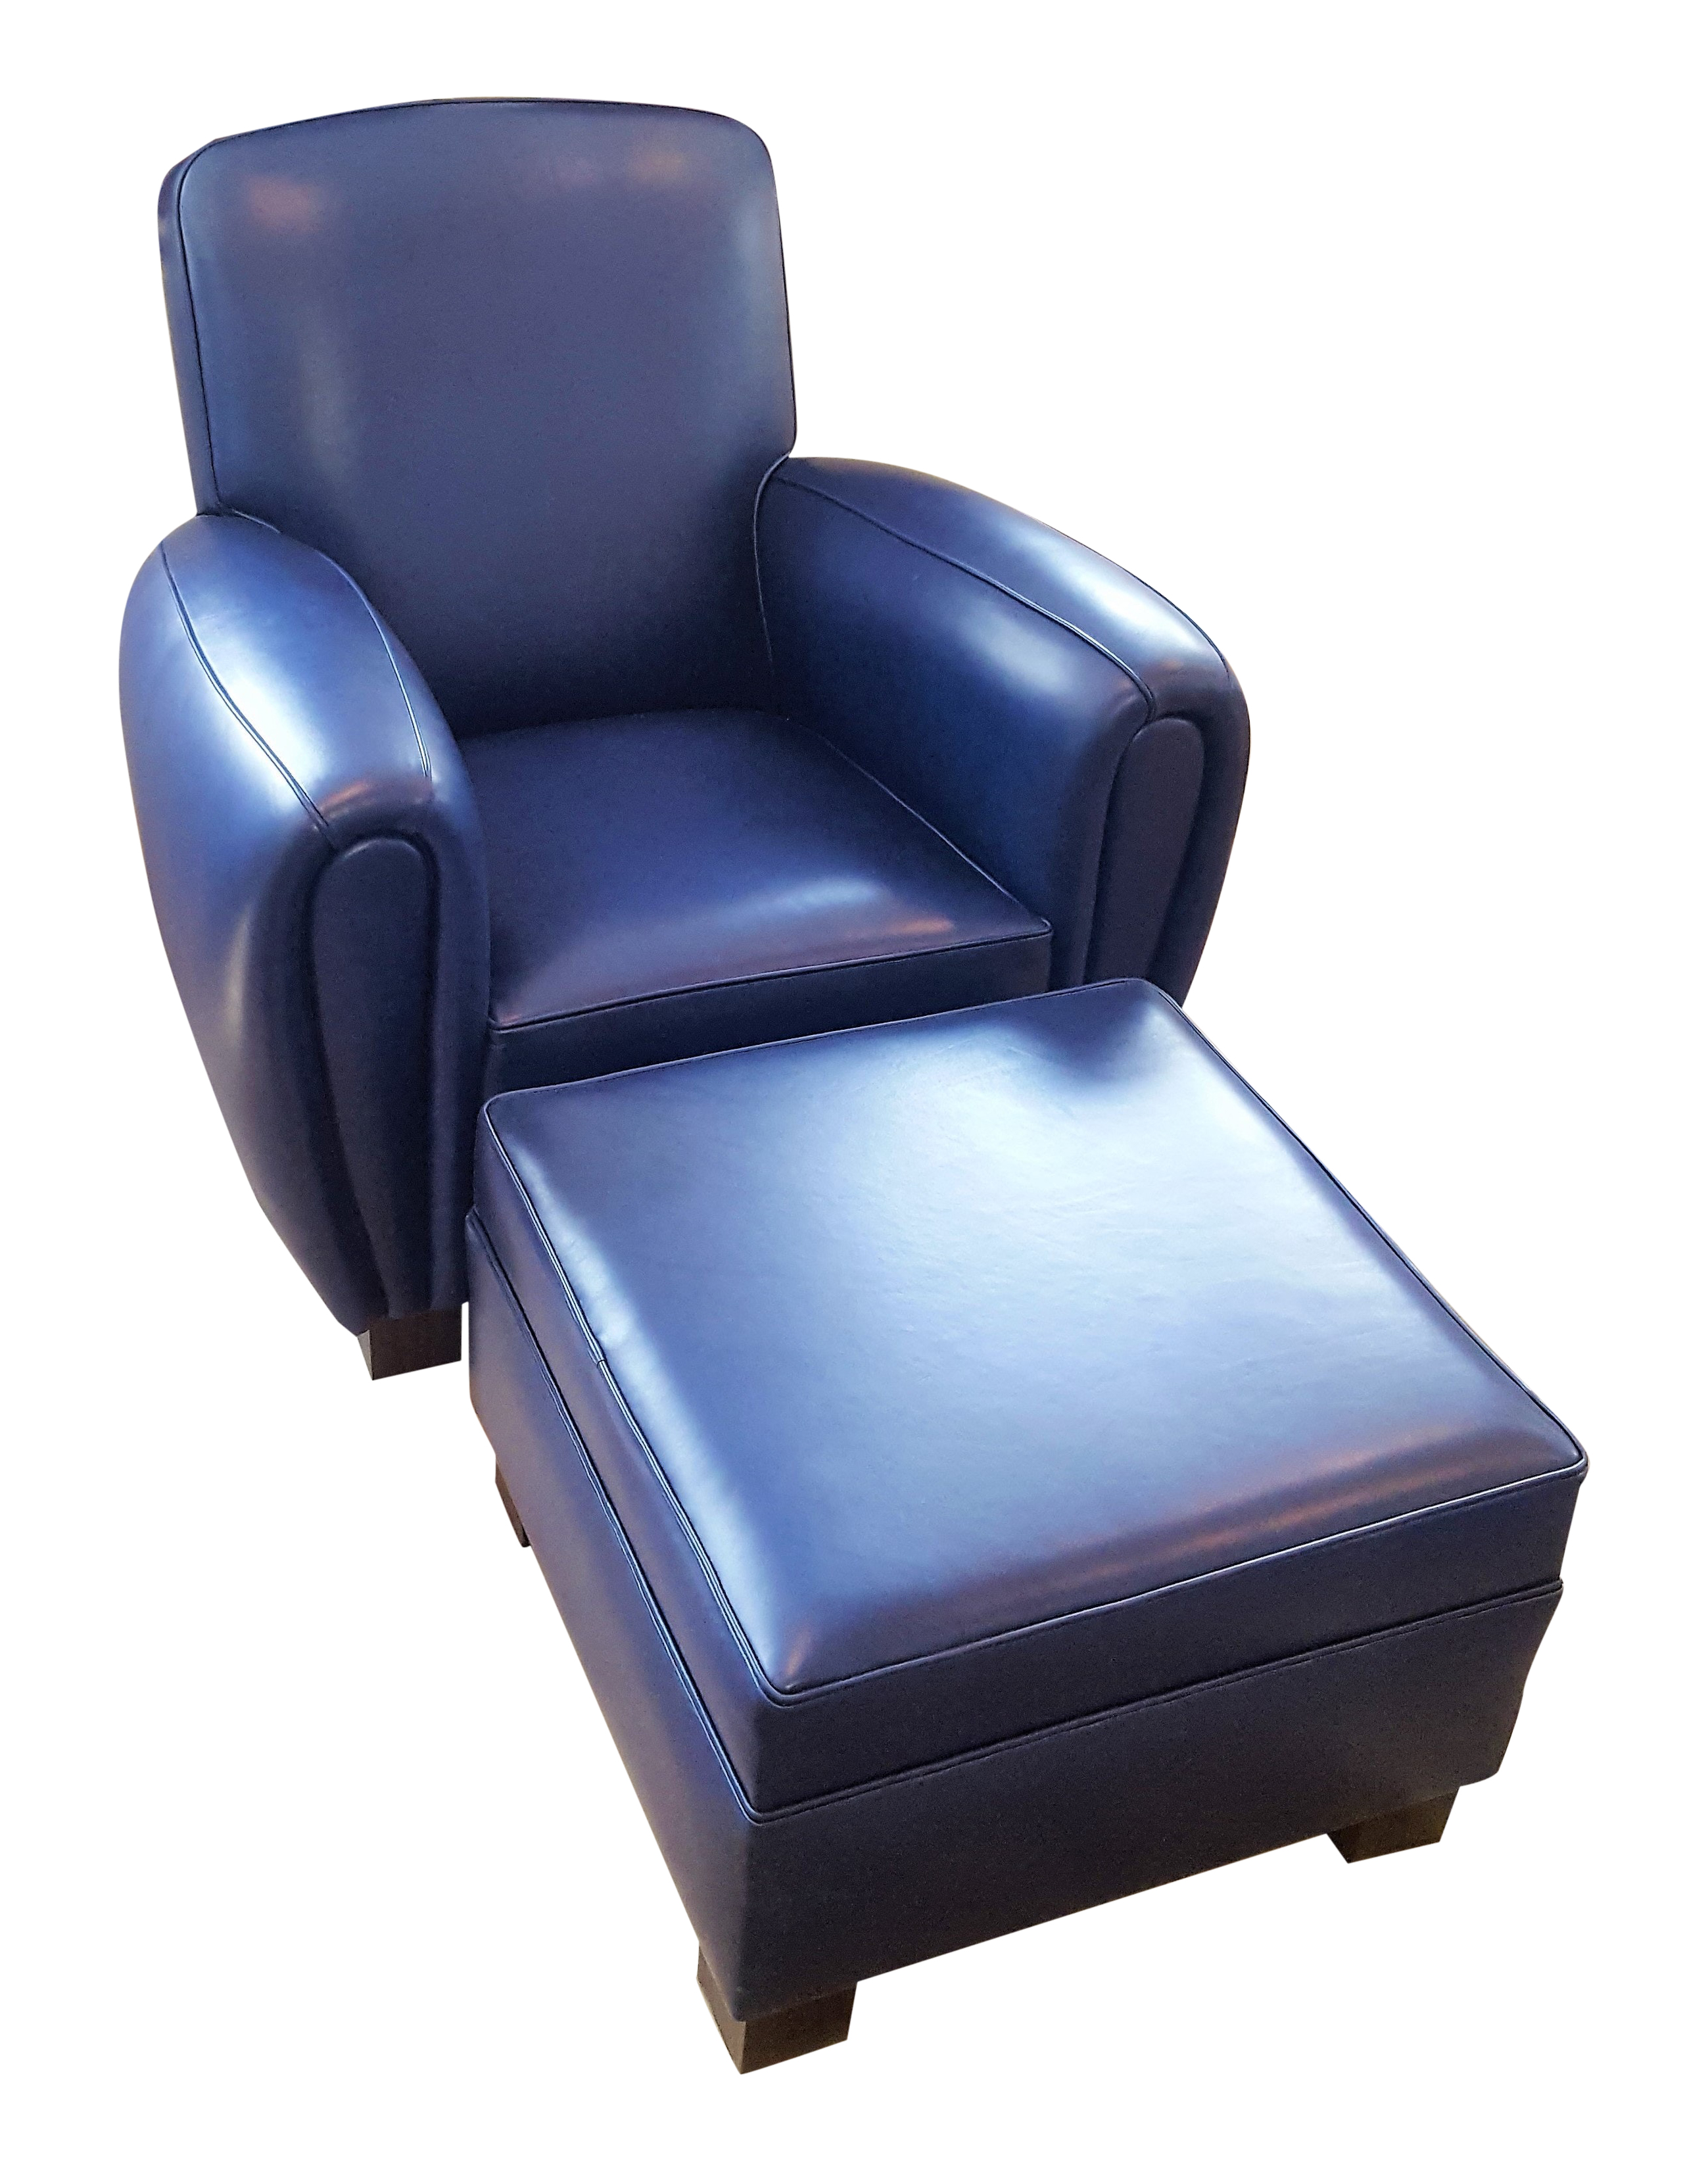 Navy Blue Leather Club Chair & Ottoman - Contemporary Traditional